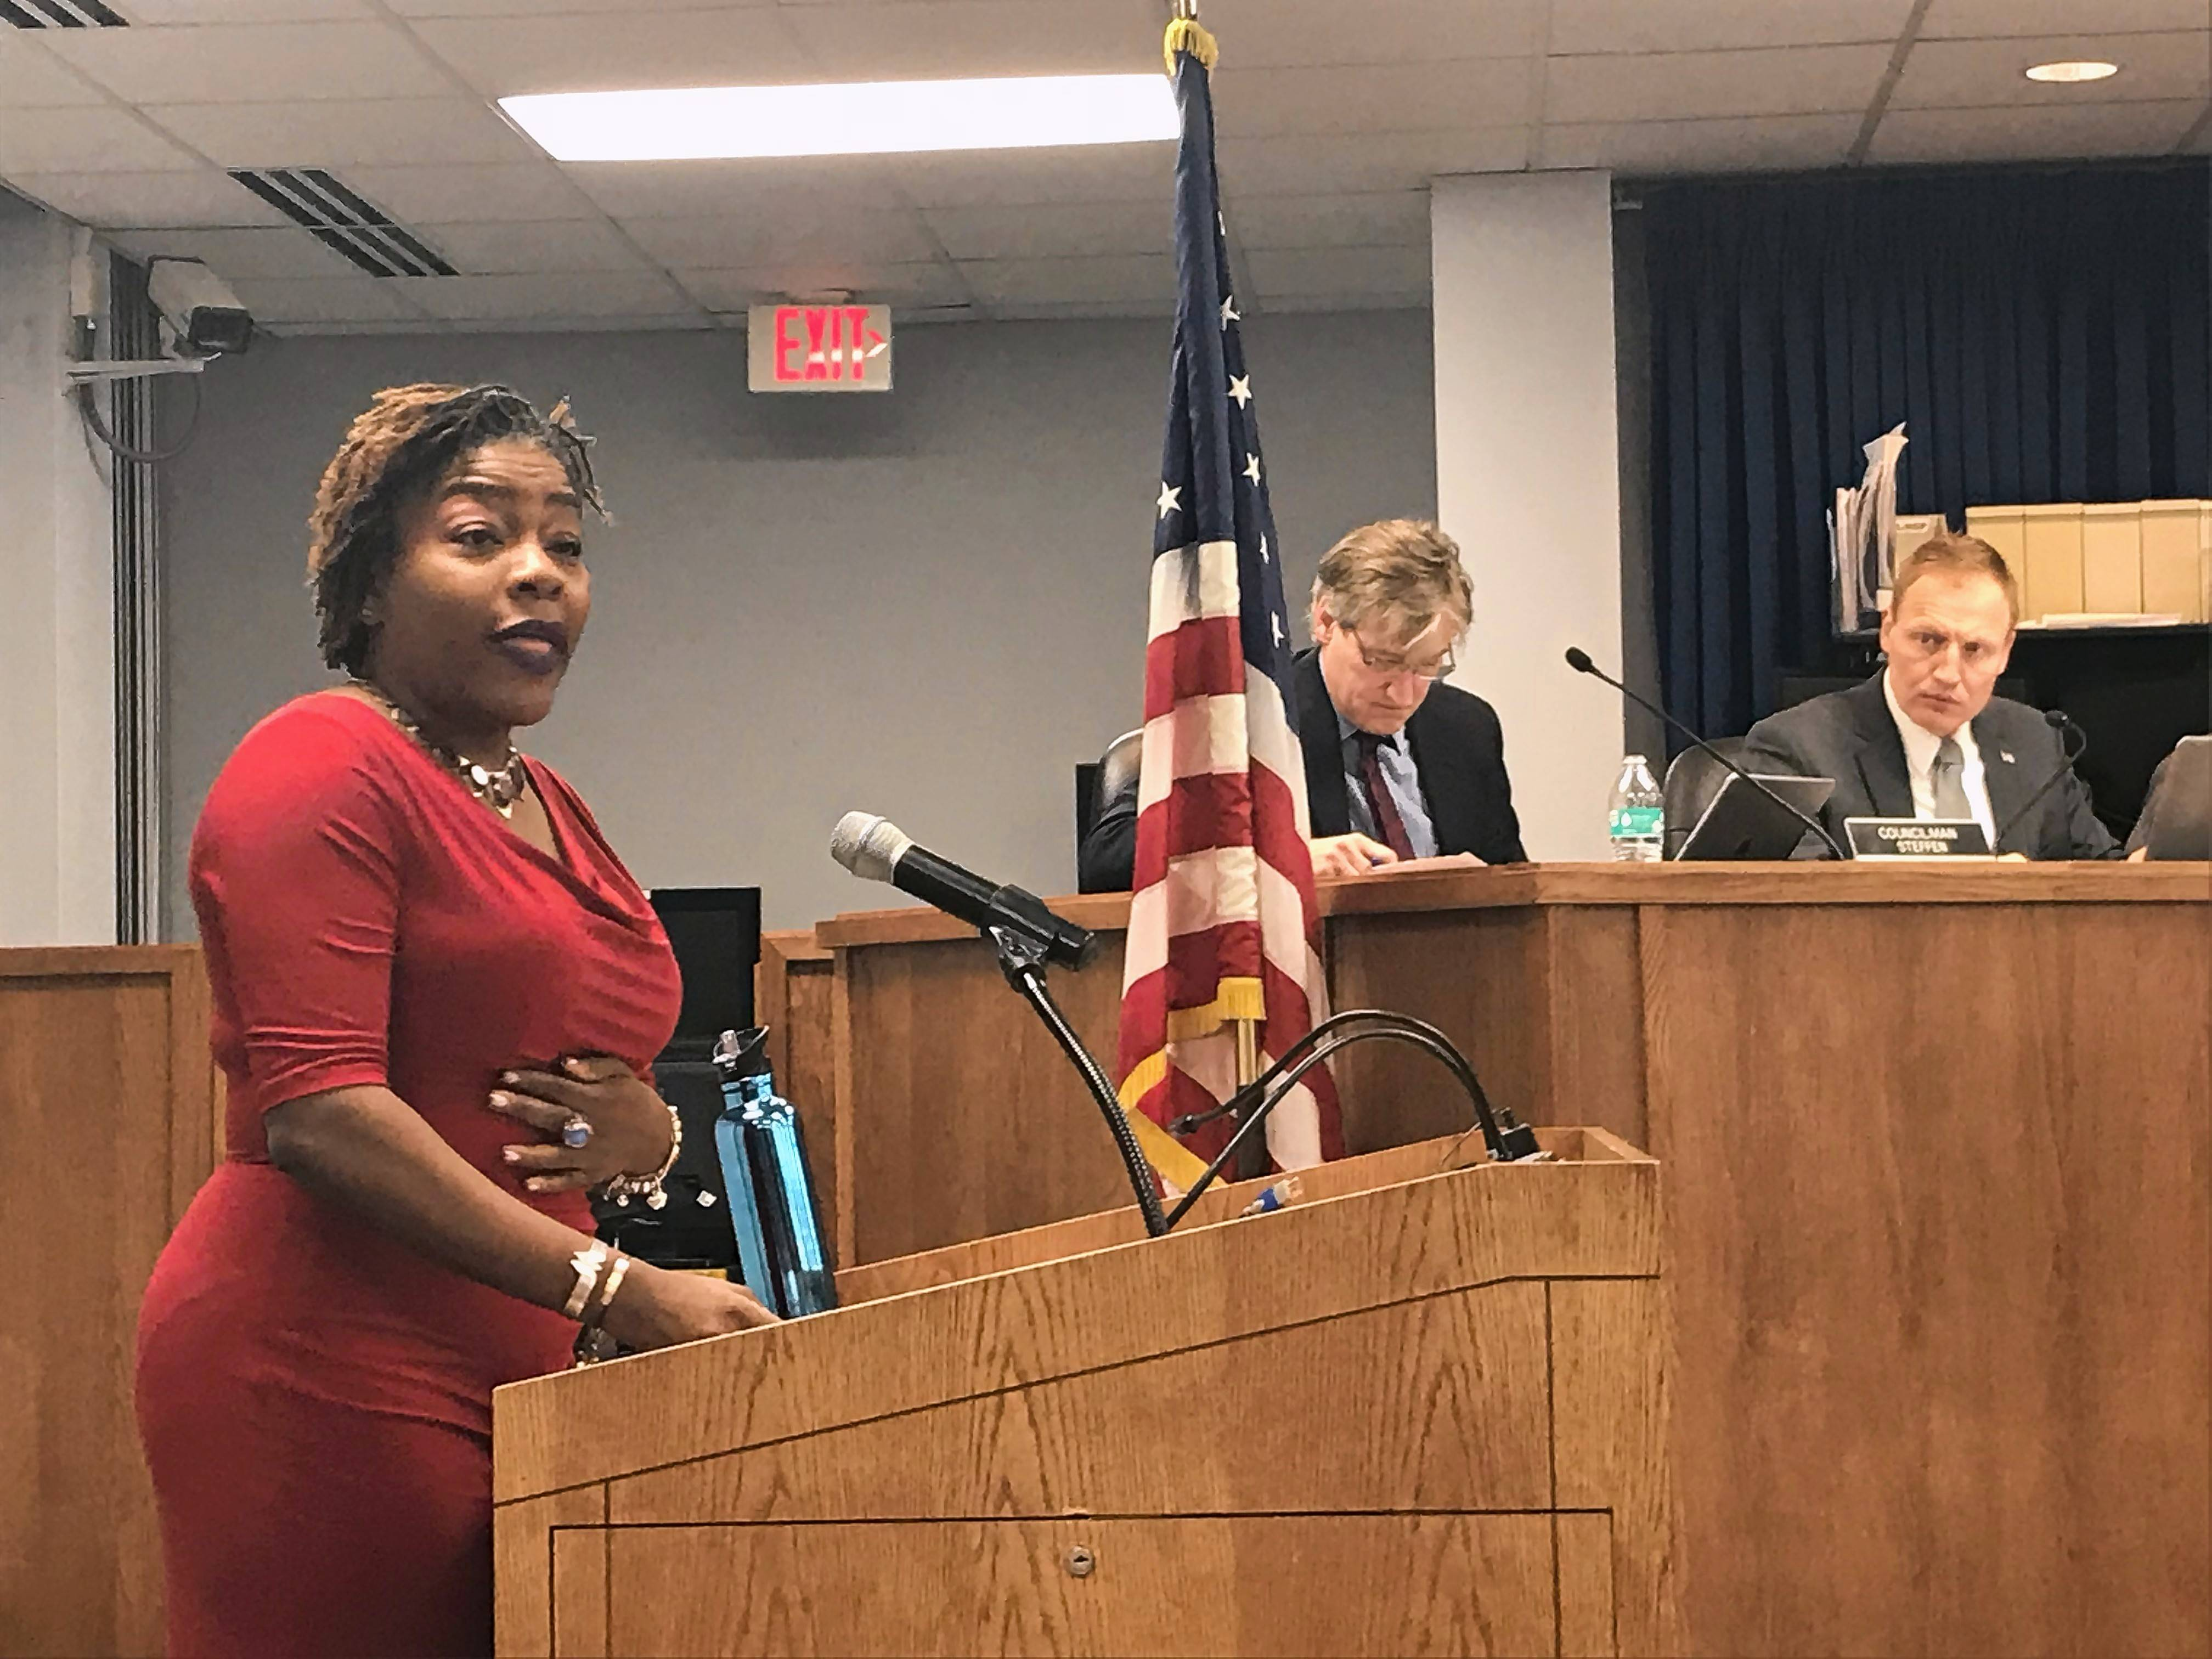 The city of Elgin has put on hold the work of diversity consultant Denise Barreto, shown here, after complaints from police officers about some of her Facebook posts.